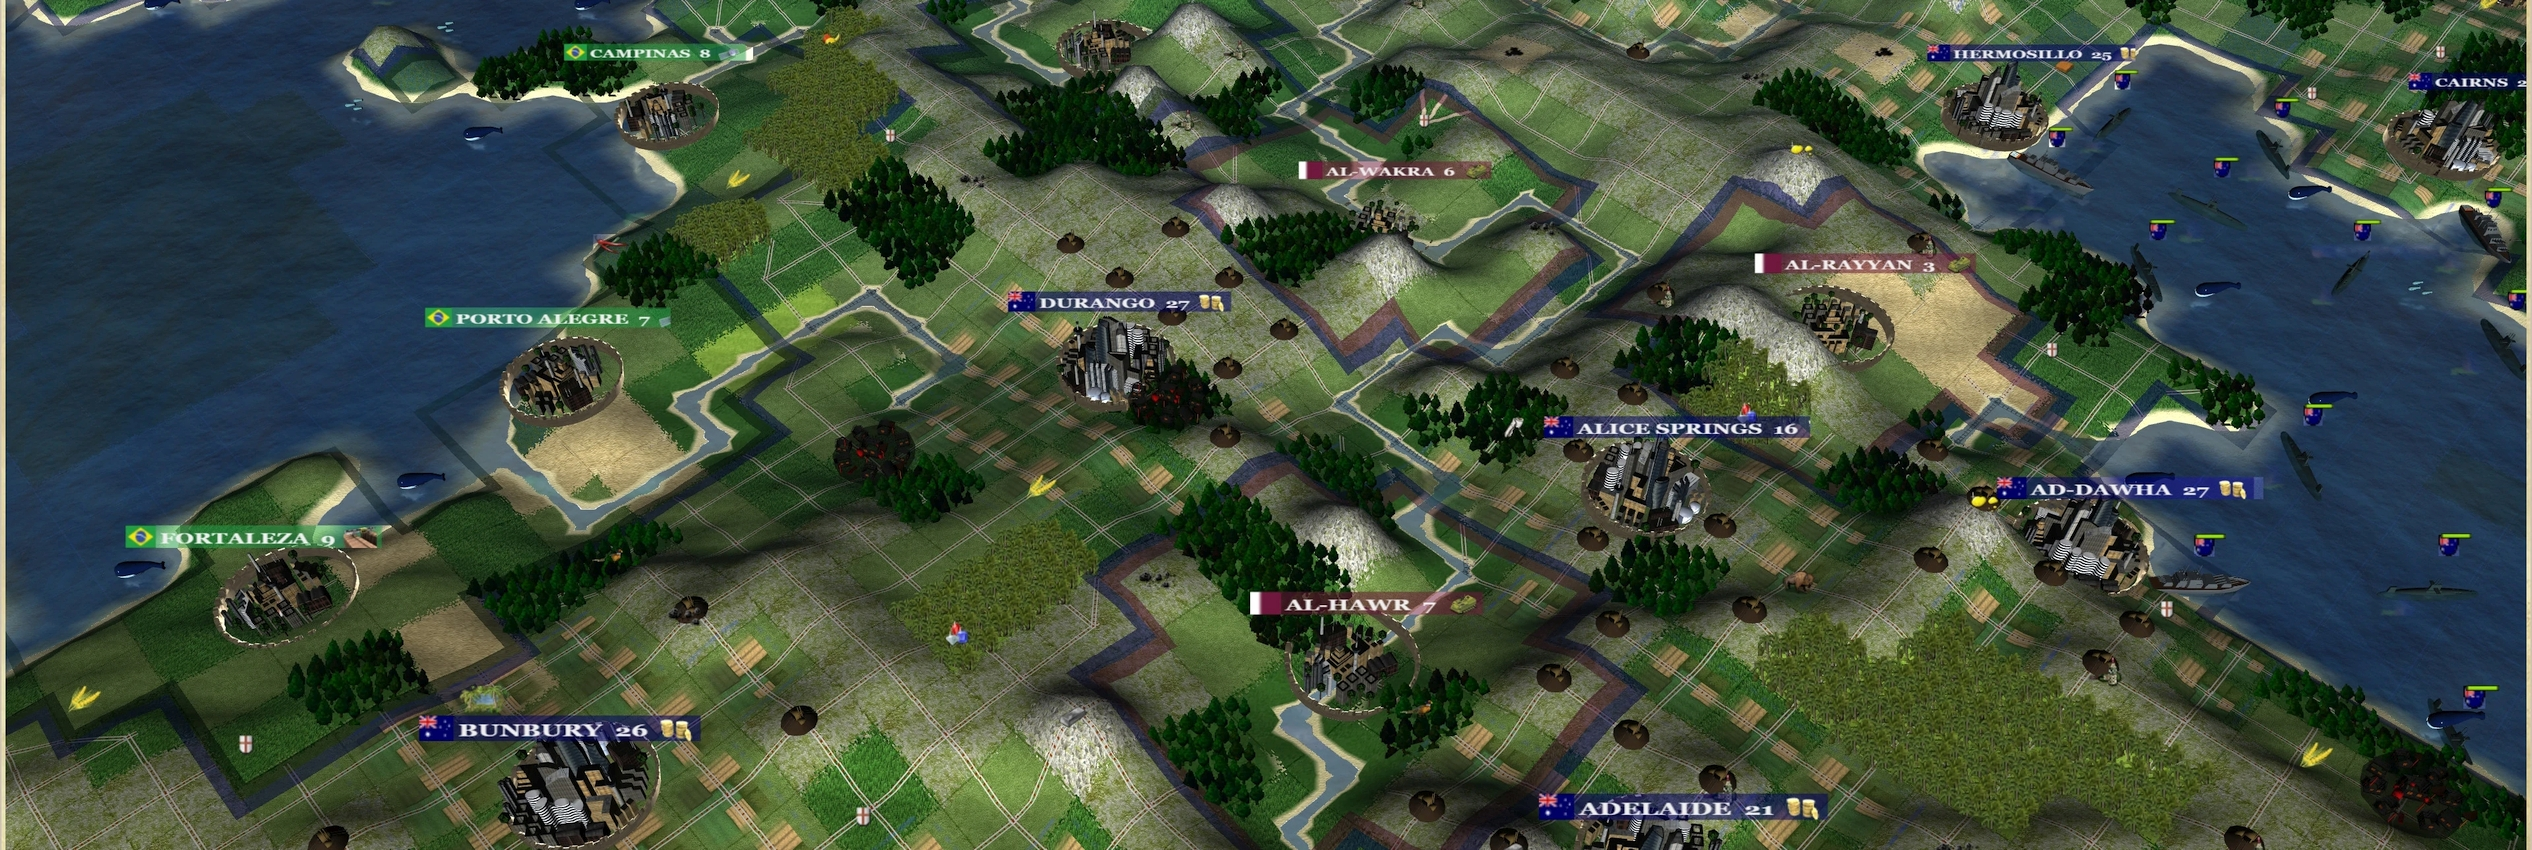 Free And Open Source Freeciv Continues To Bring Players Together Across The World